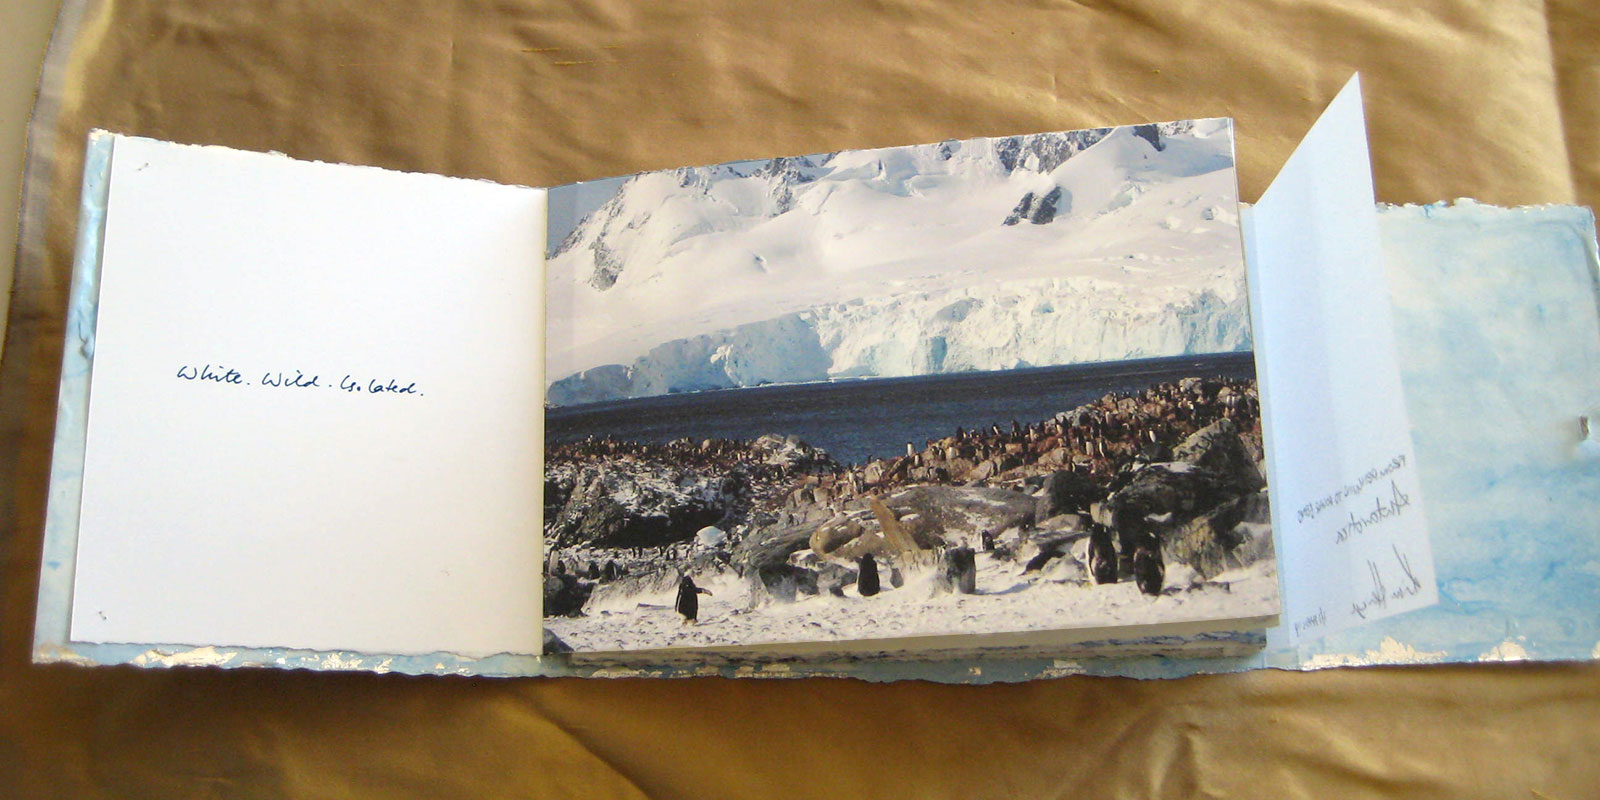 From Penguins to Polar Bears - Antarctica - page 1